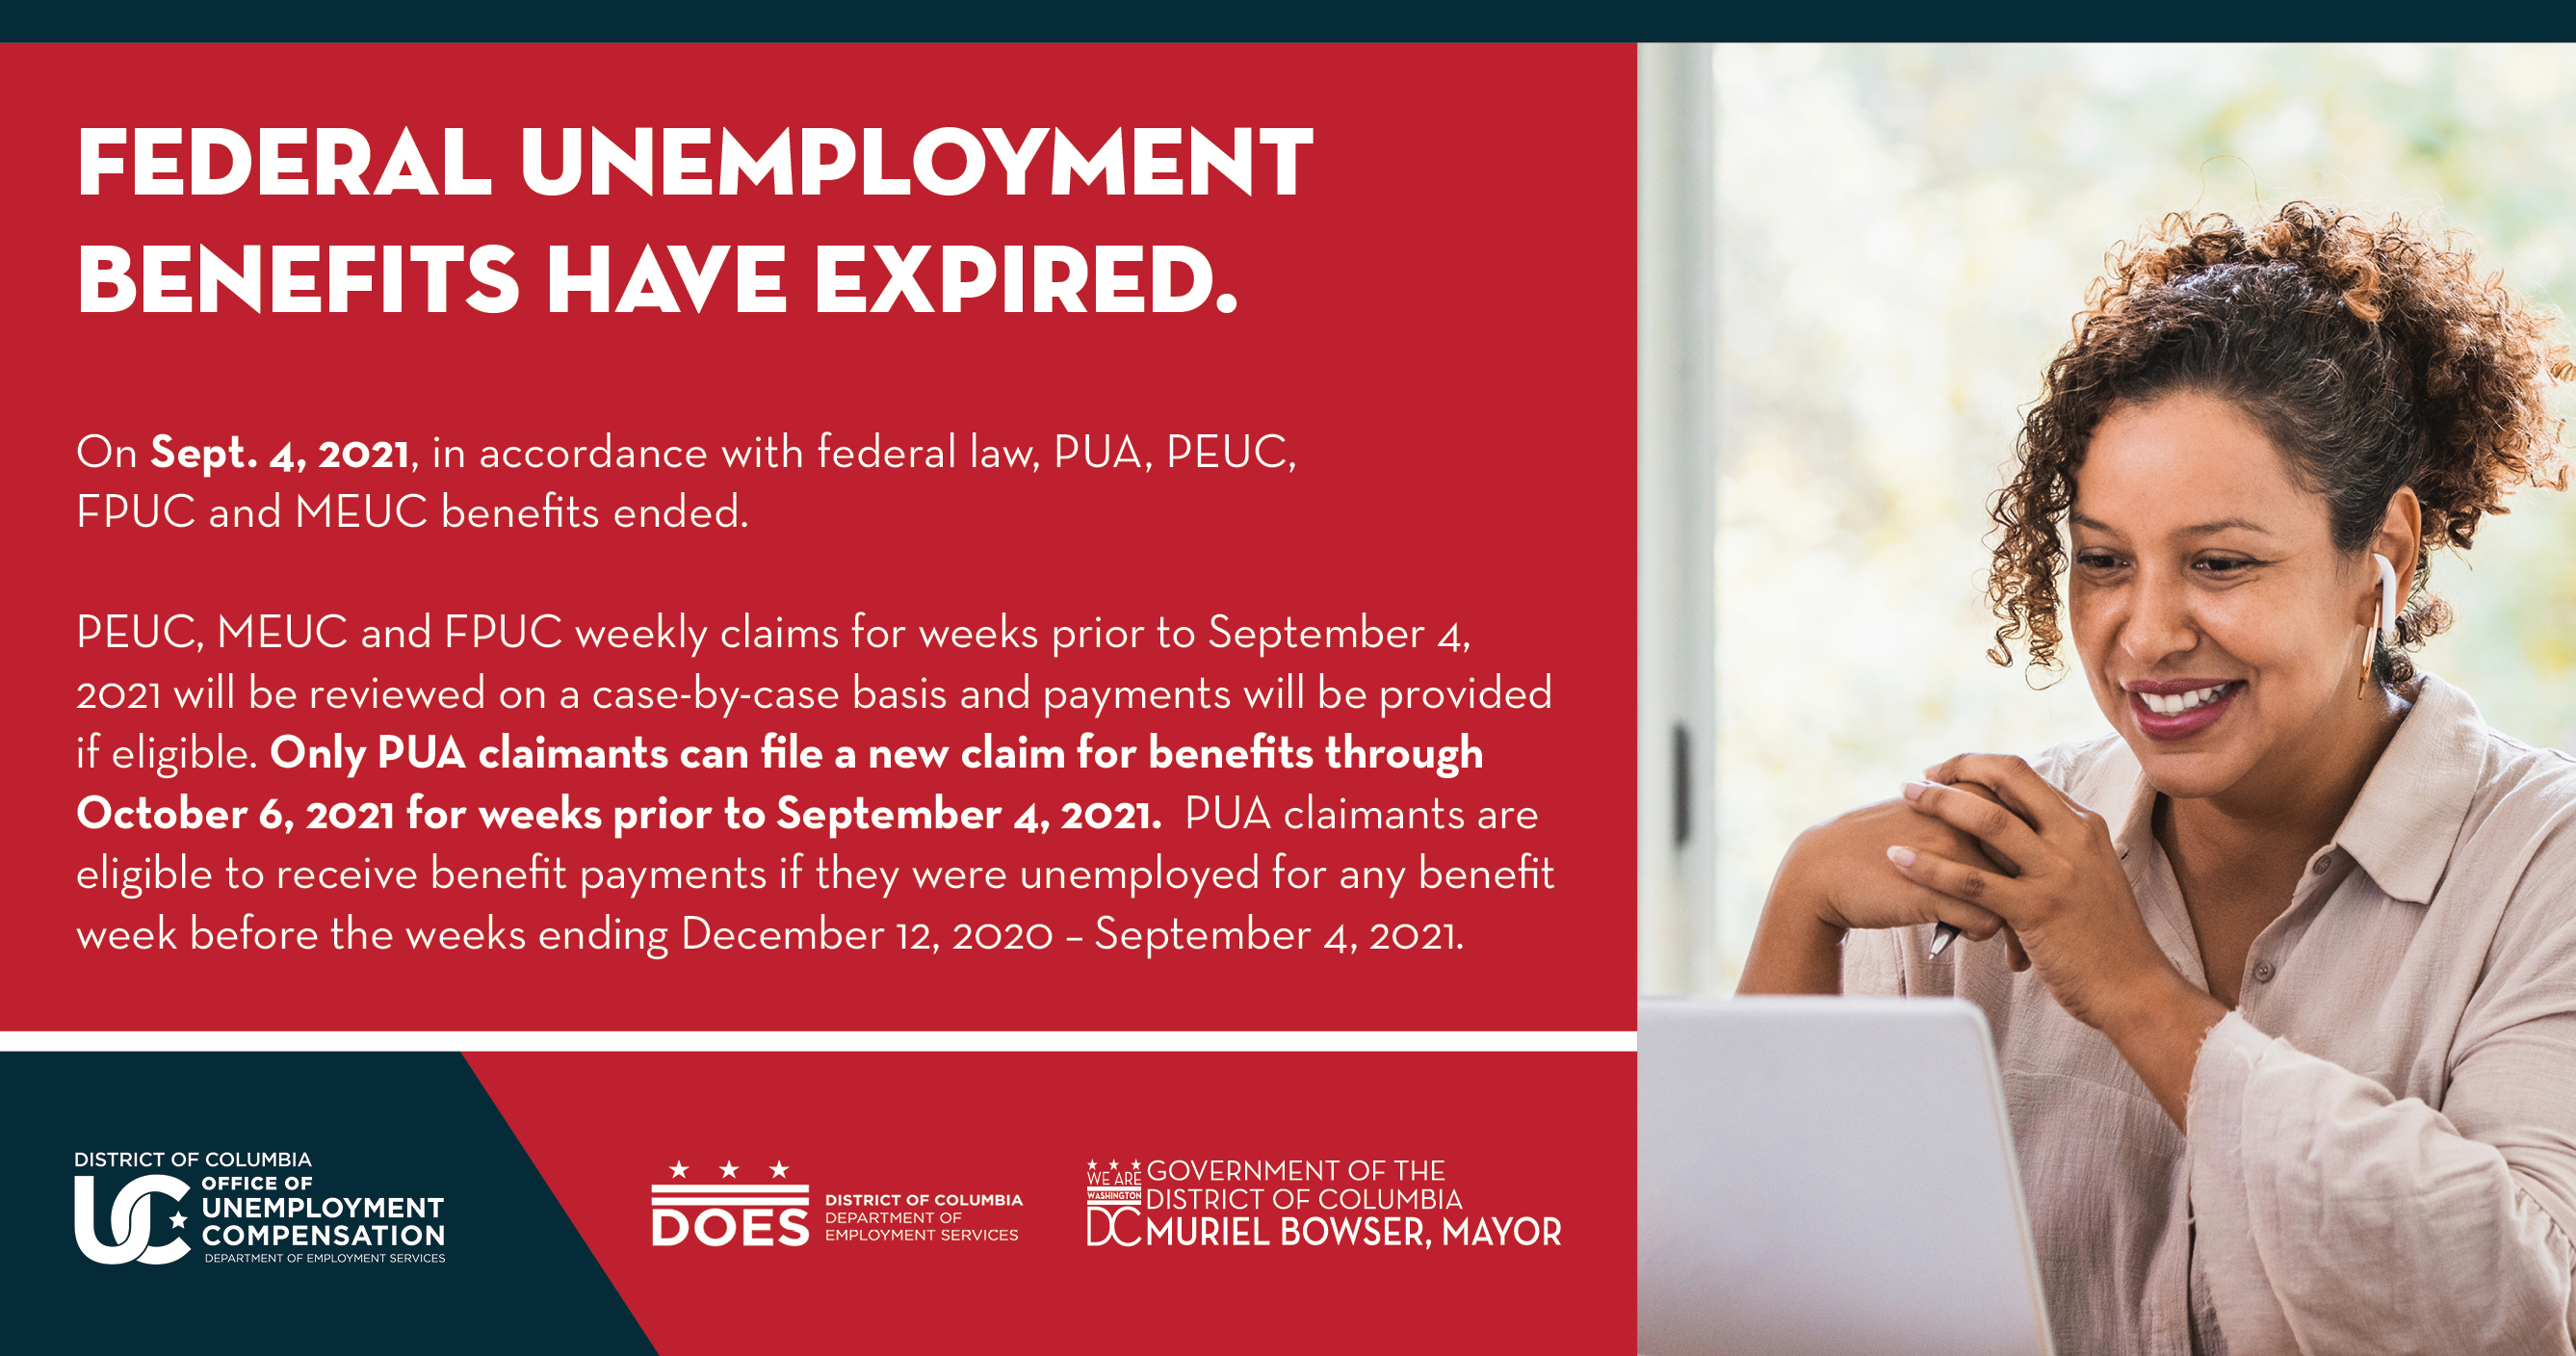 Learn more about which federal unemployment benefits ended September 4